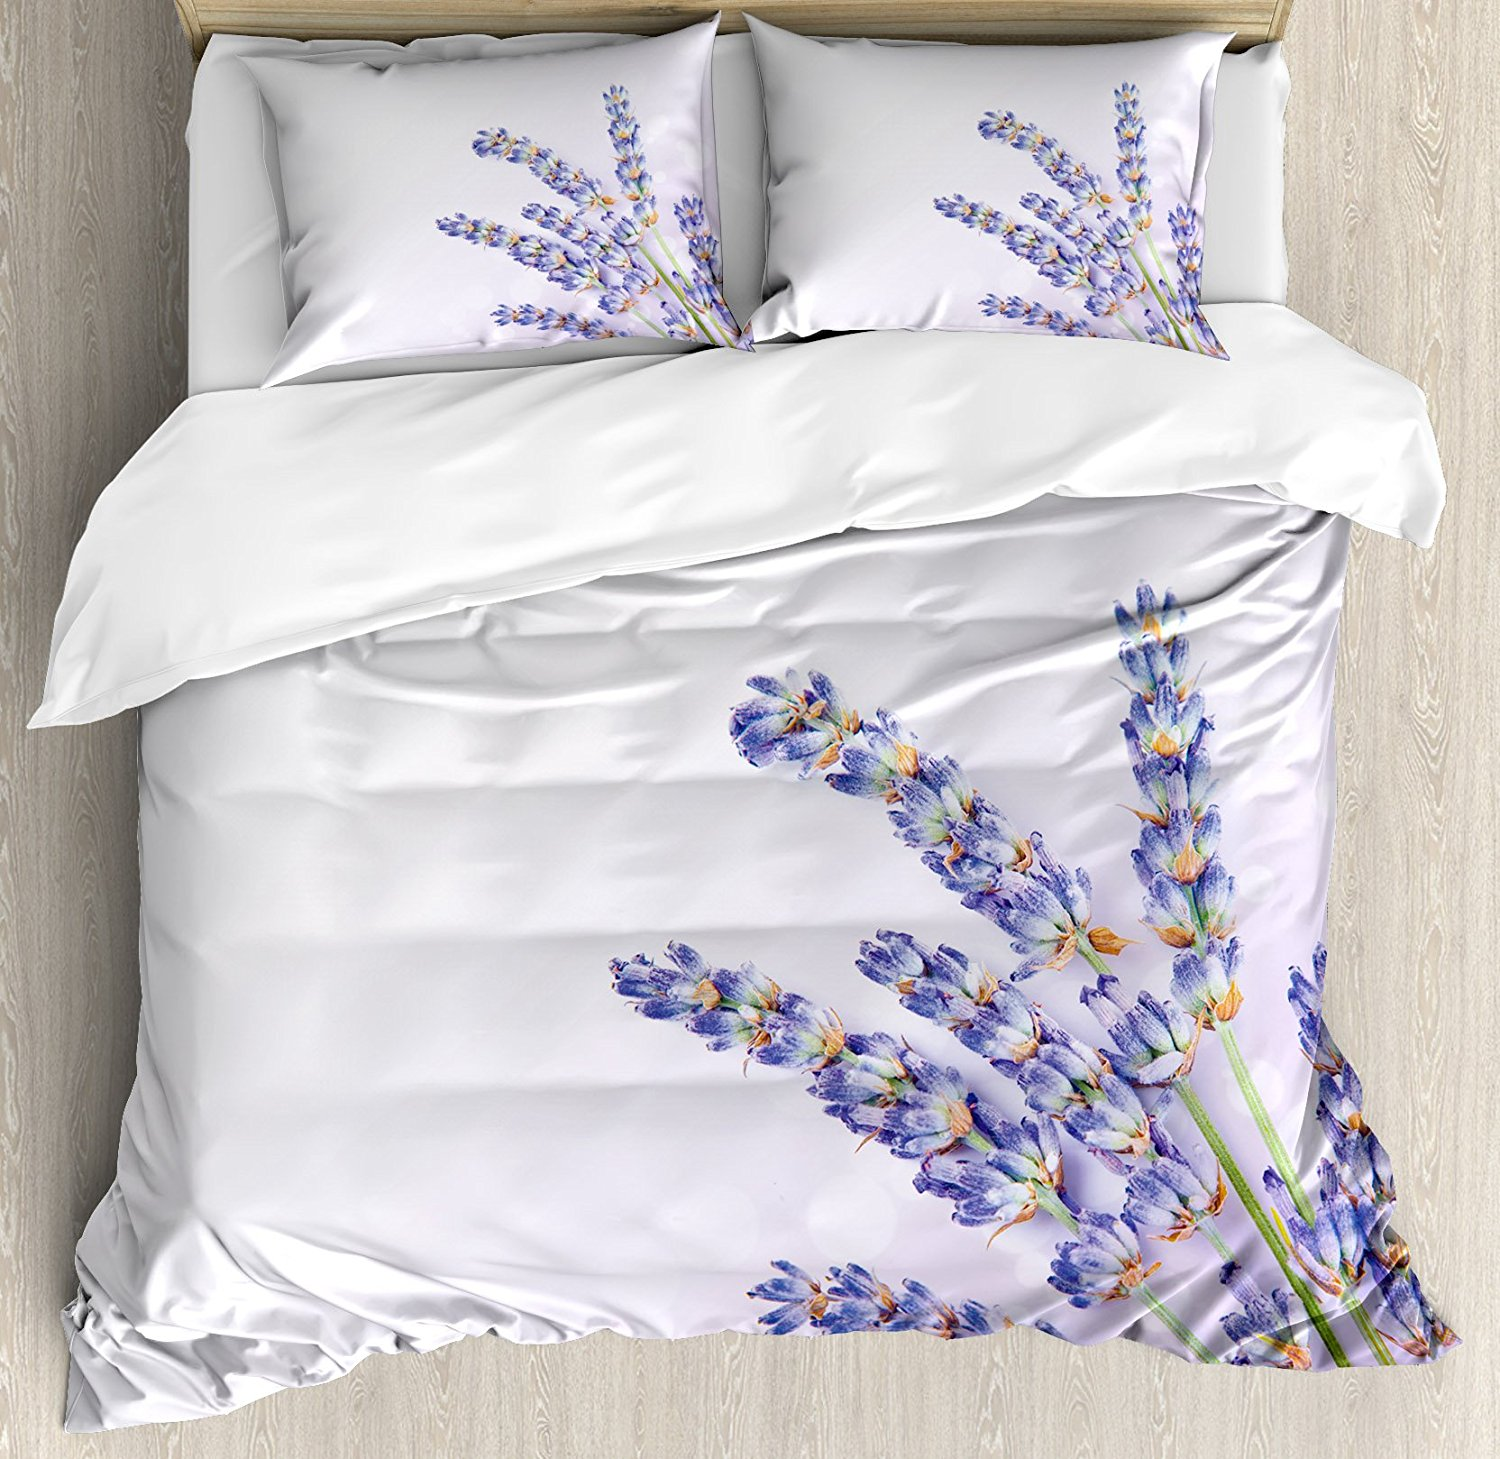 Lavender duvet cover set little posy of medicinal herb fresh plant of purple flower spa aromatheraphy organic 4pcs bedding set in bedding sets from home